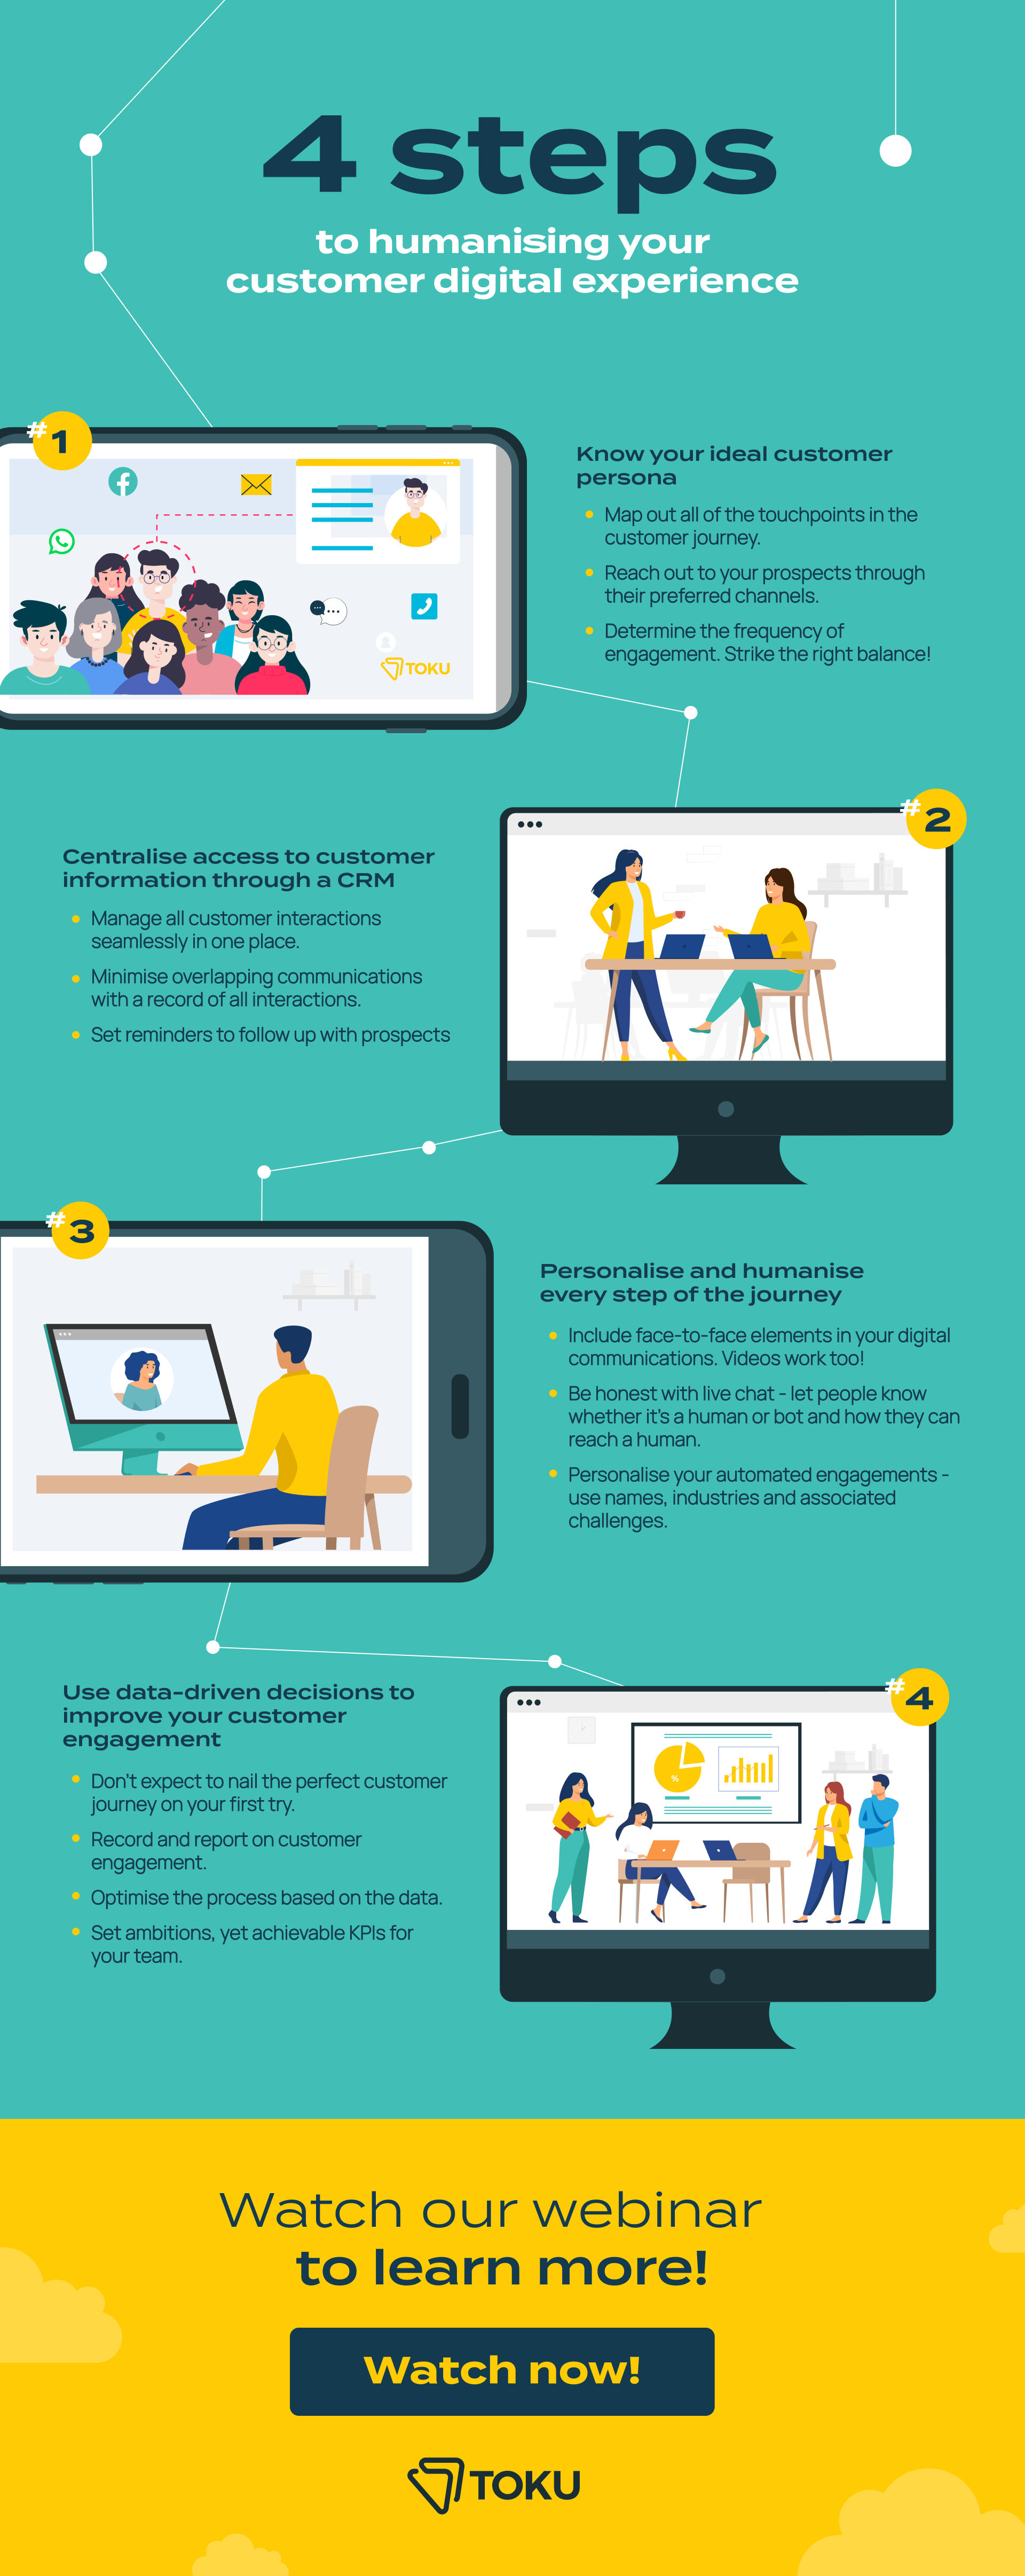 4 steps to humanising your customer experience infographic